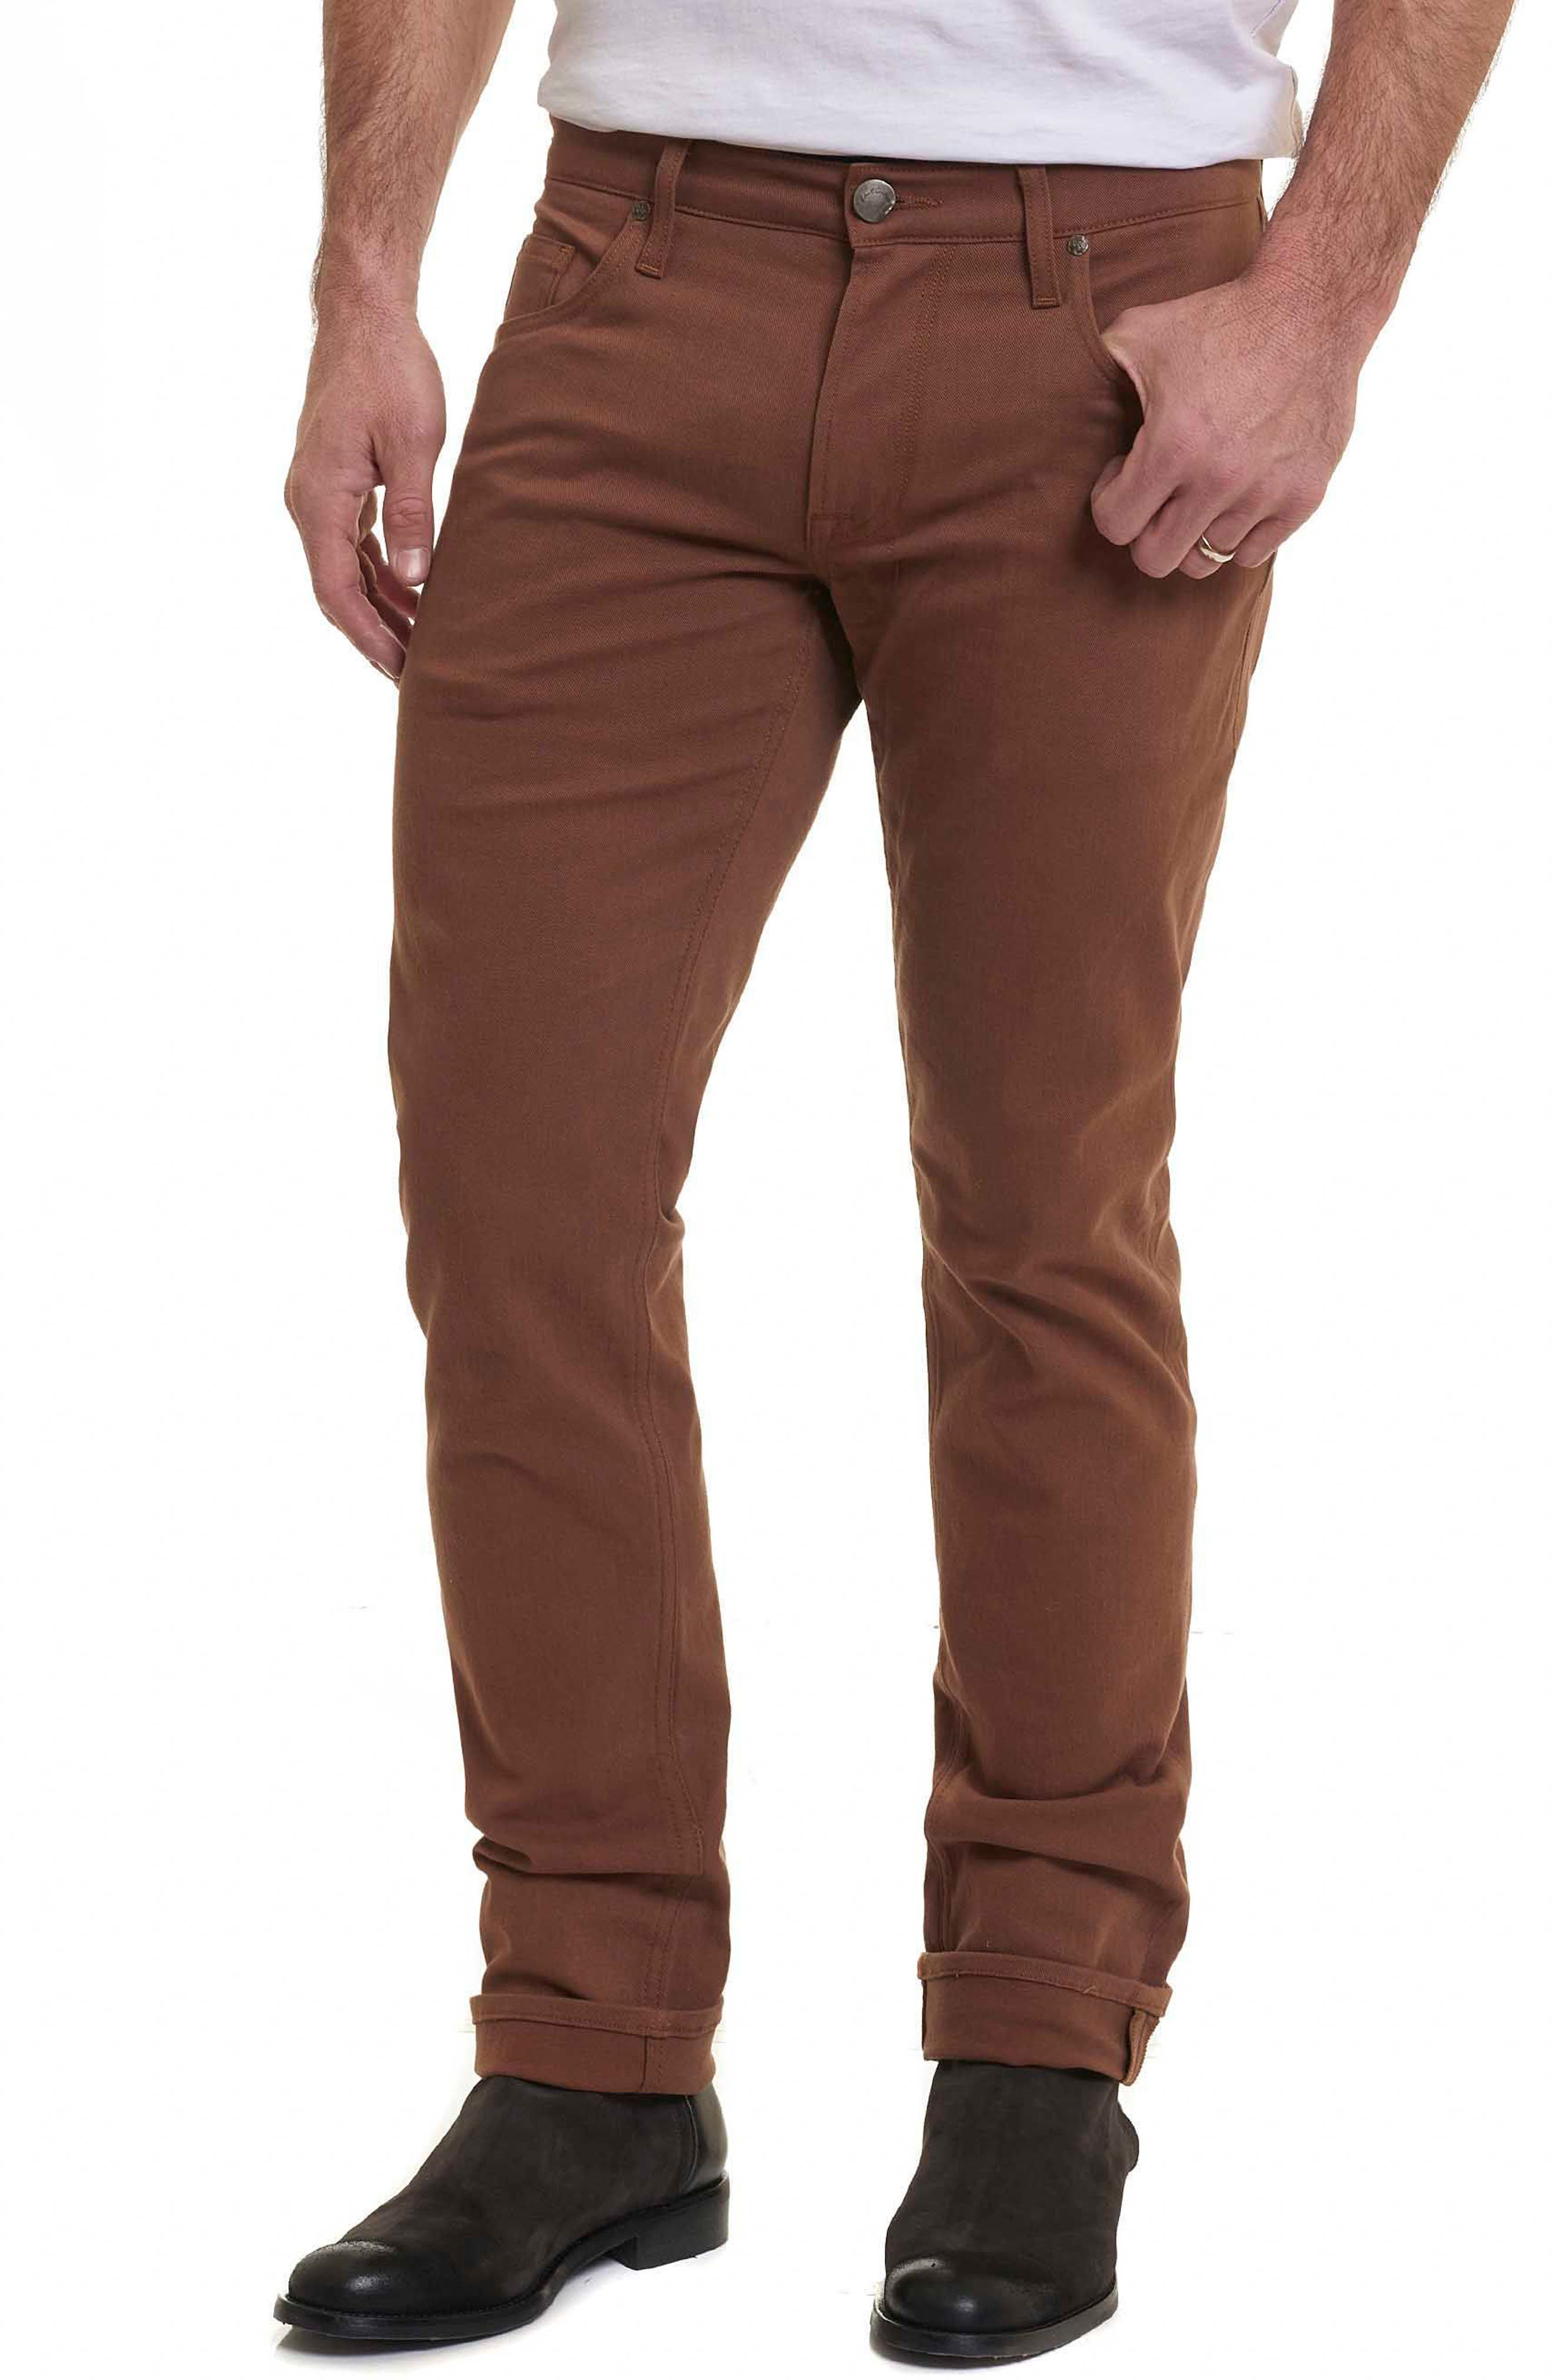 Corwin Classic Fit Jeans,                         Main,                         color, 220